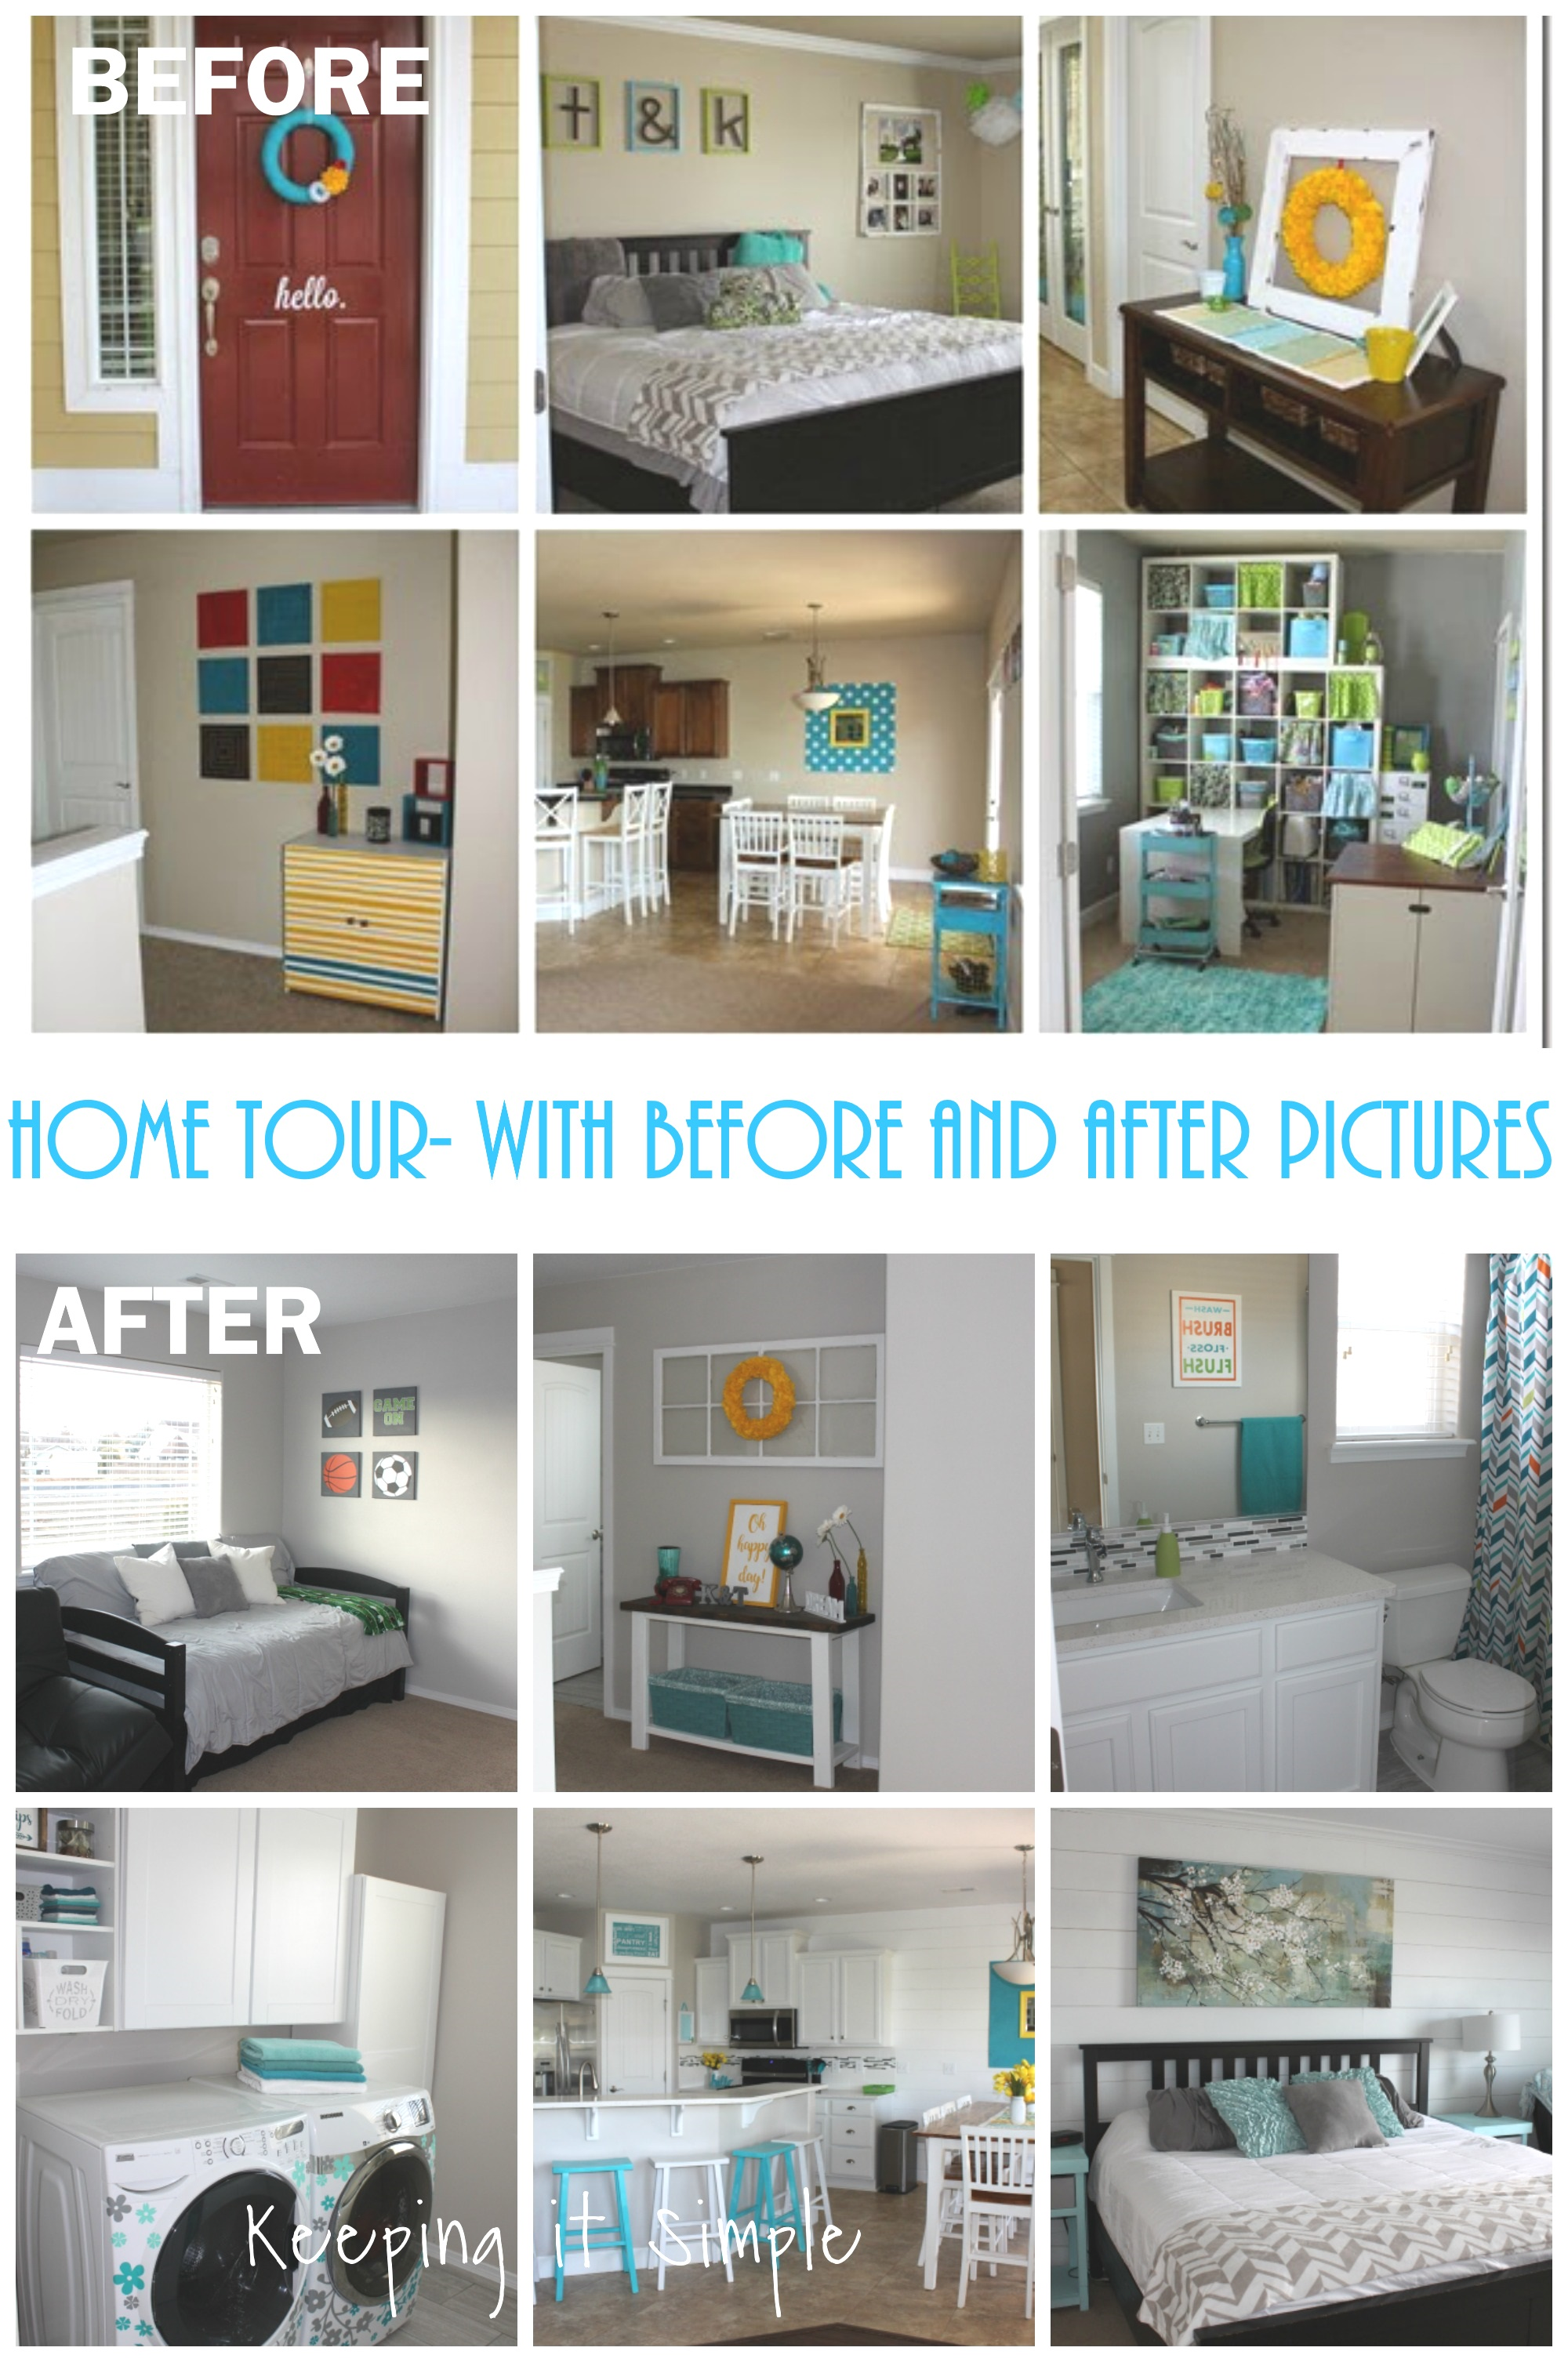 Home Tour Before And After O Keeping It Simple